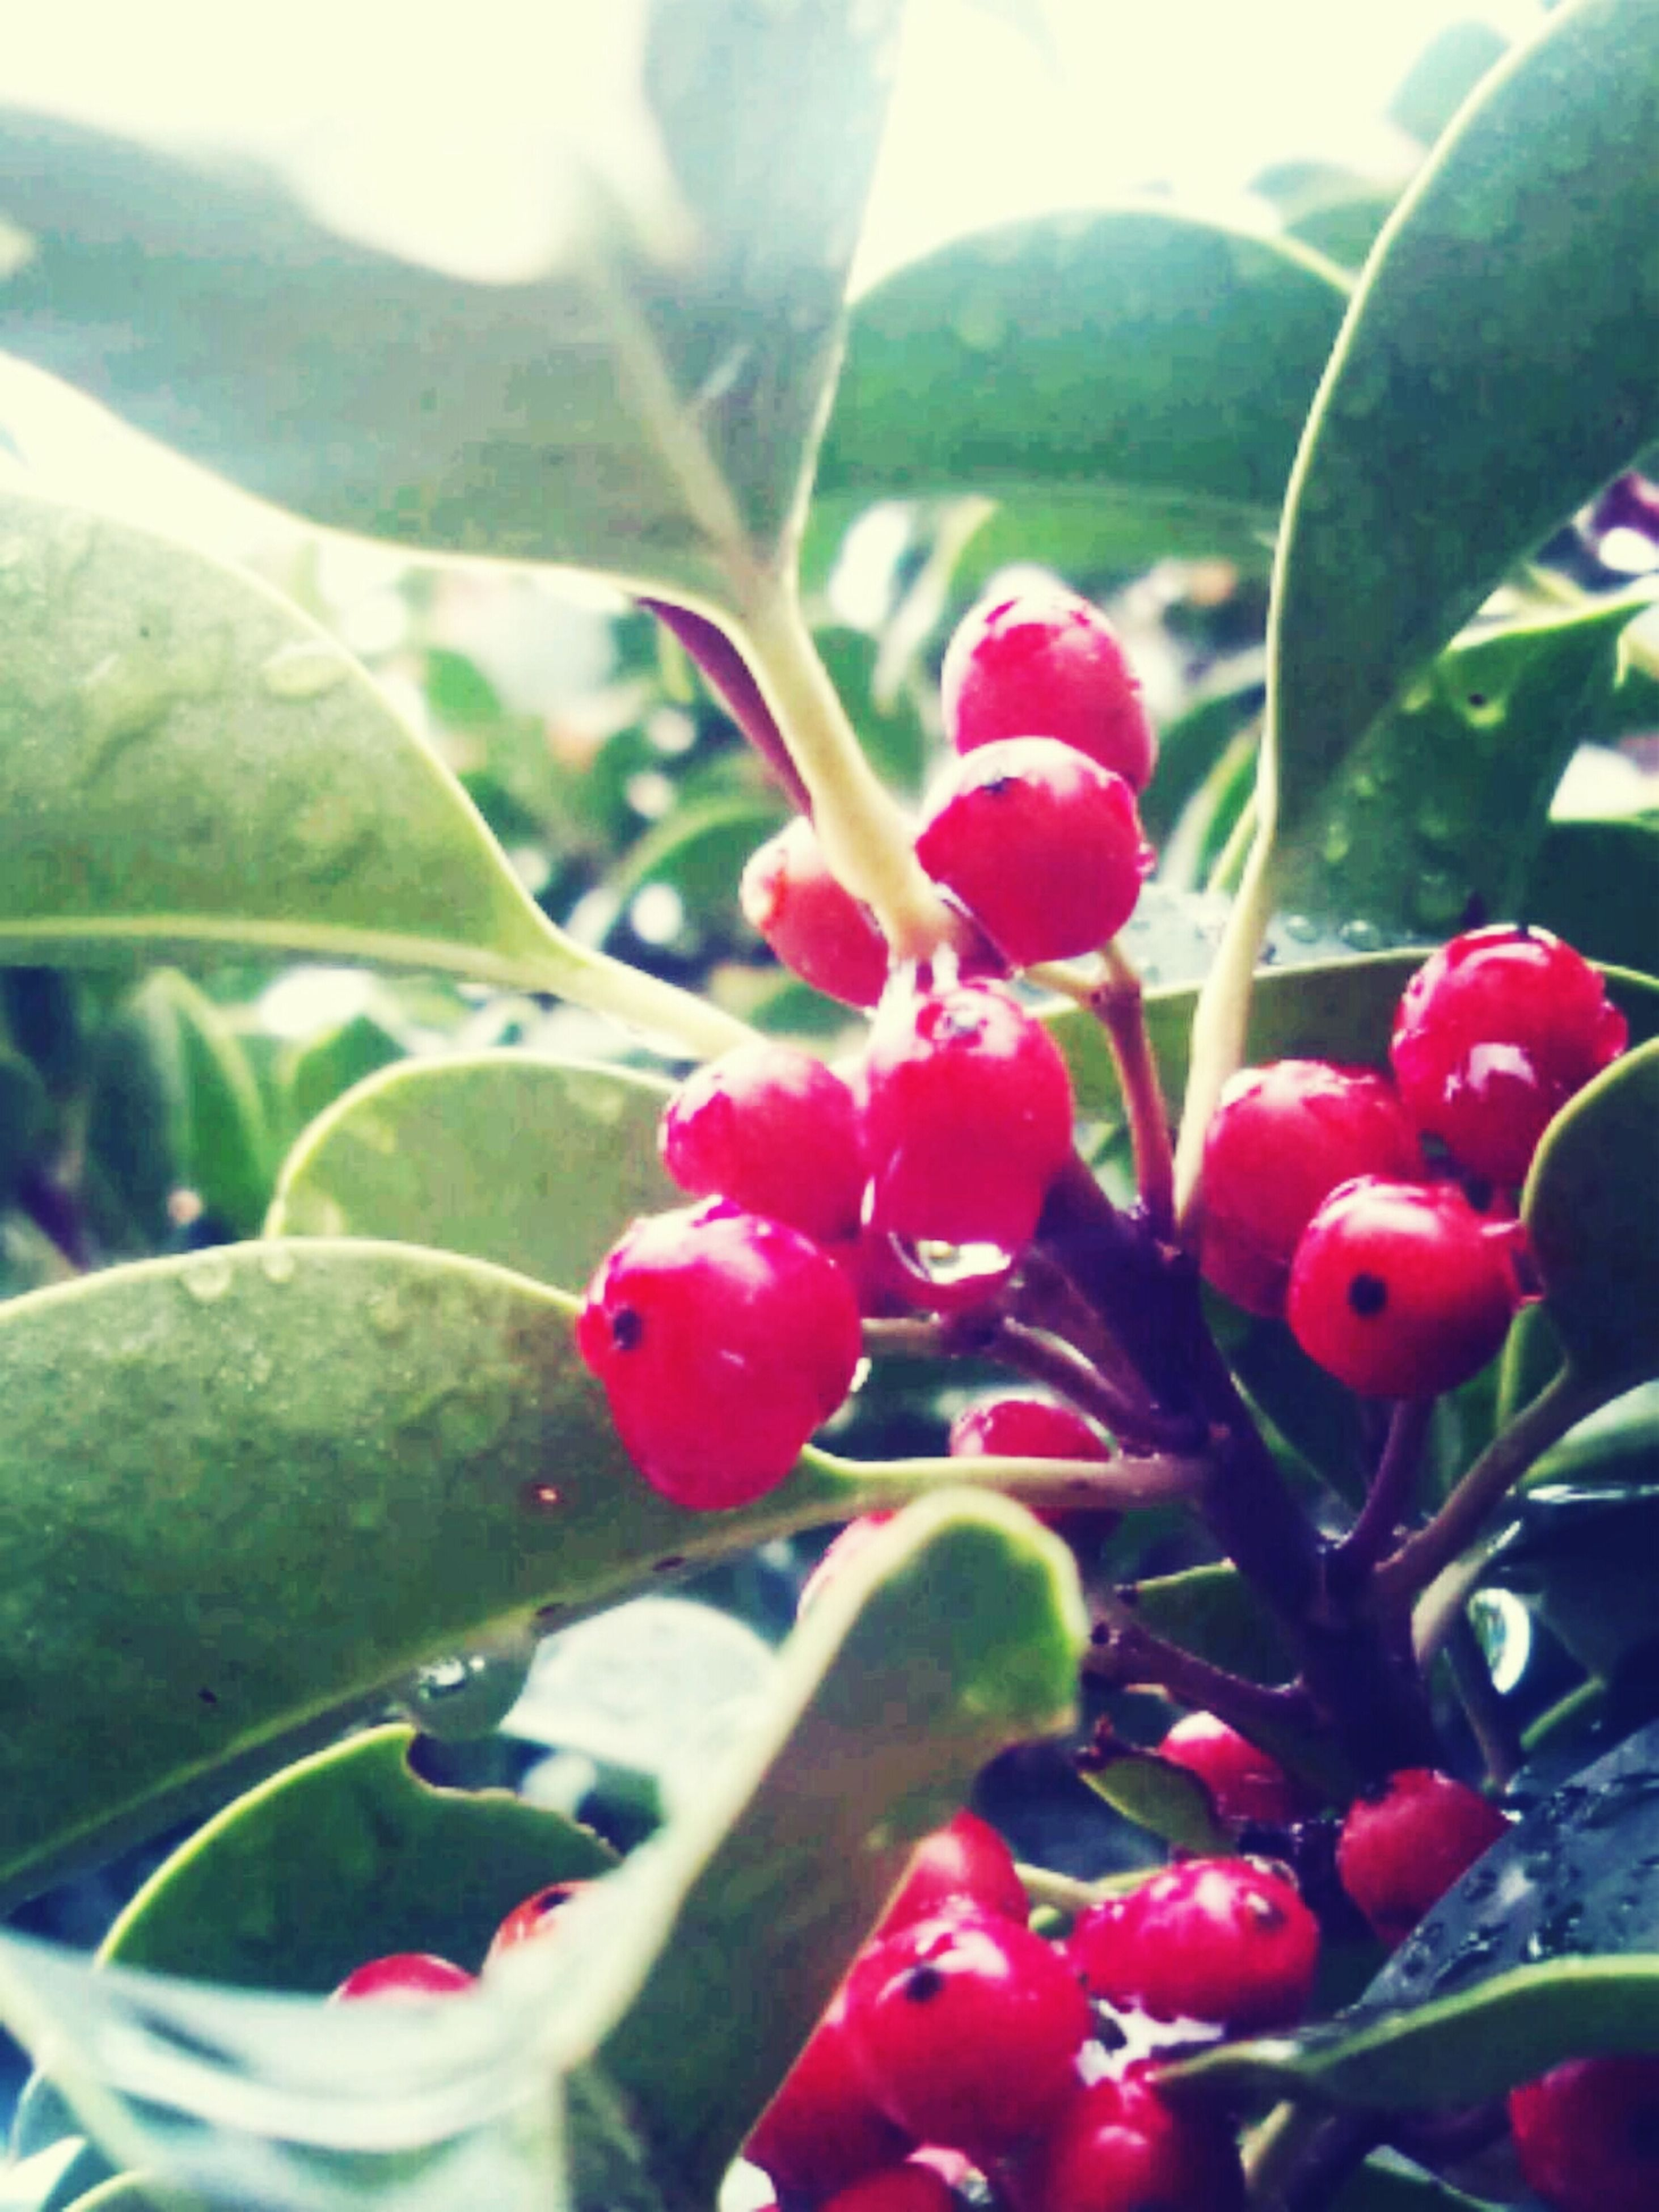 freshness, red, flower, growth, leaf, close-up, beauty in nature, fruit, plant, nature, fragility, focus on foreground, water, food and drink, petal, stem, bud, berry fruit, day, green color